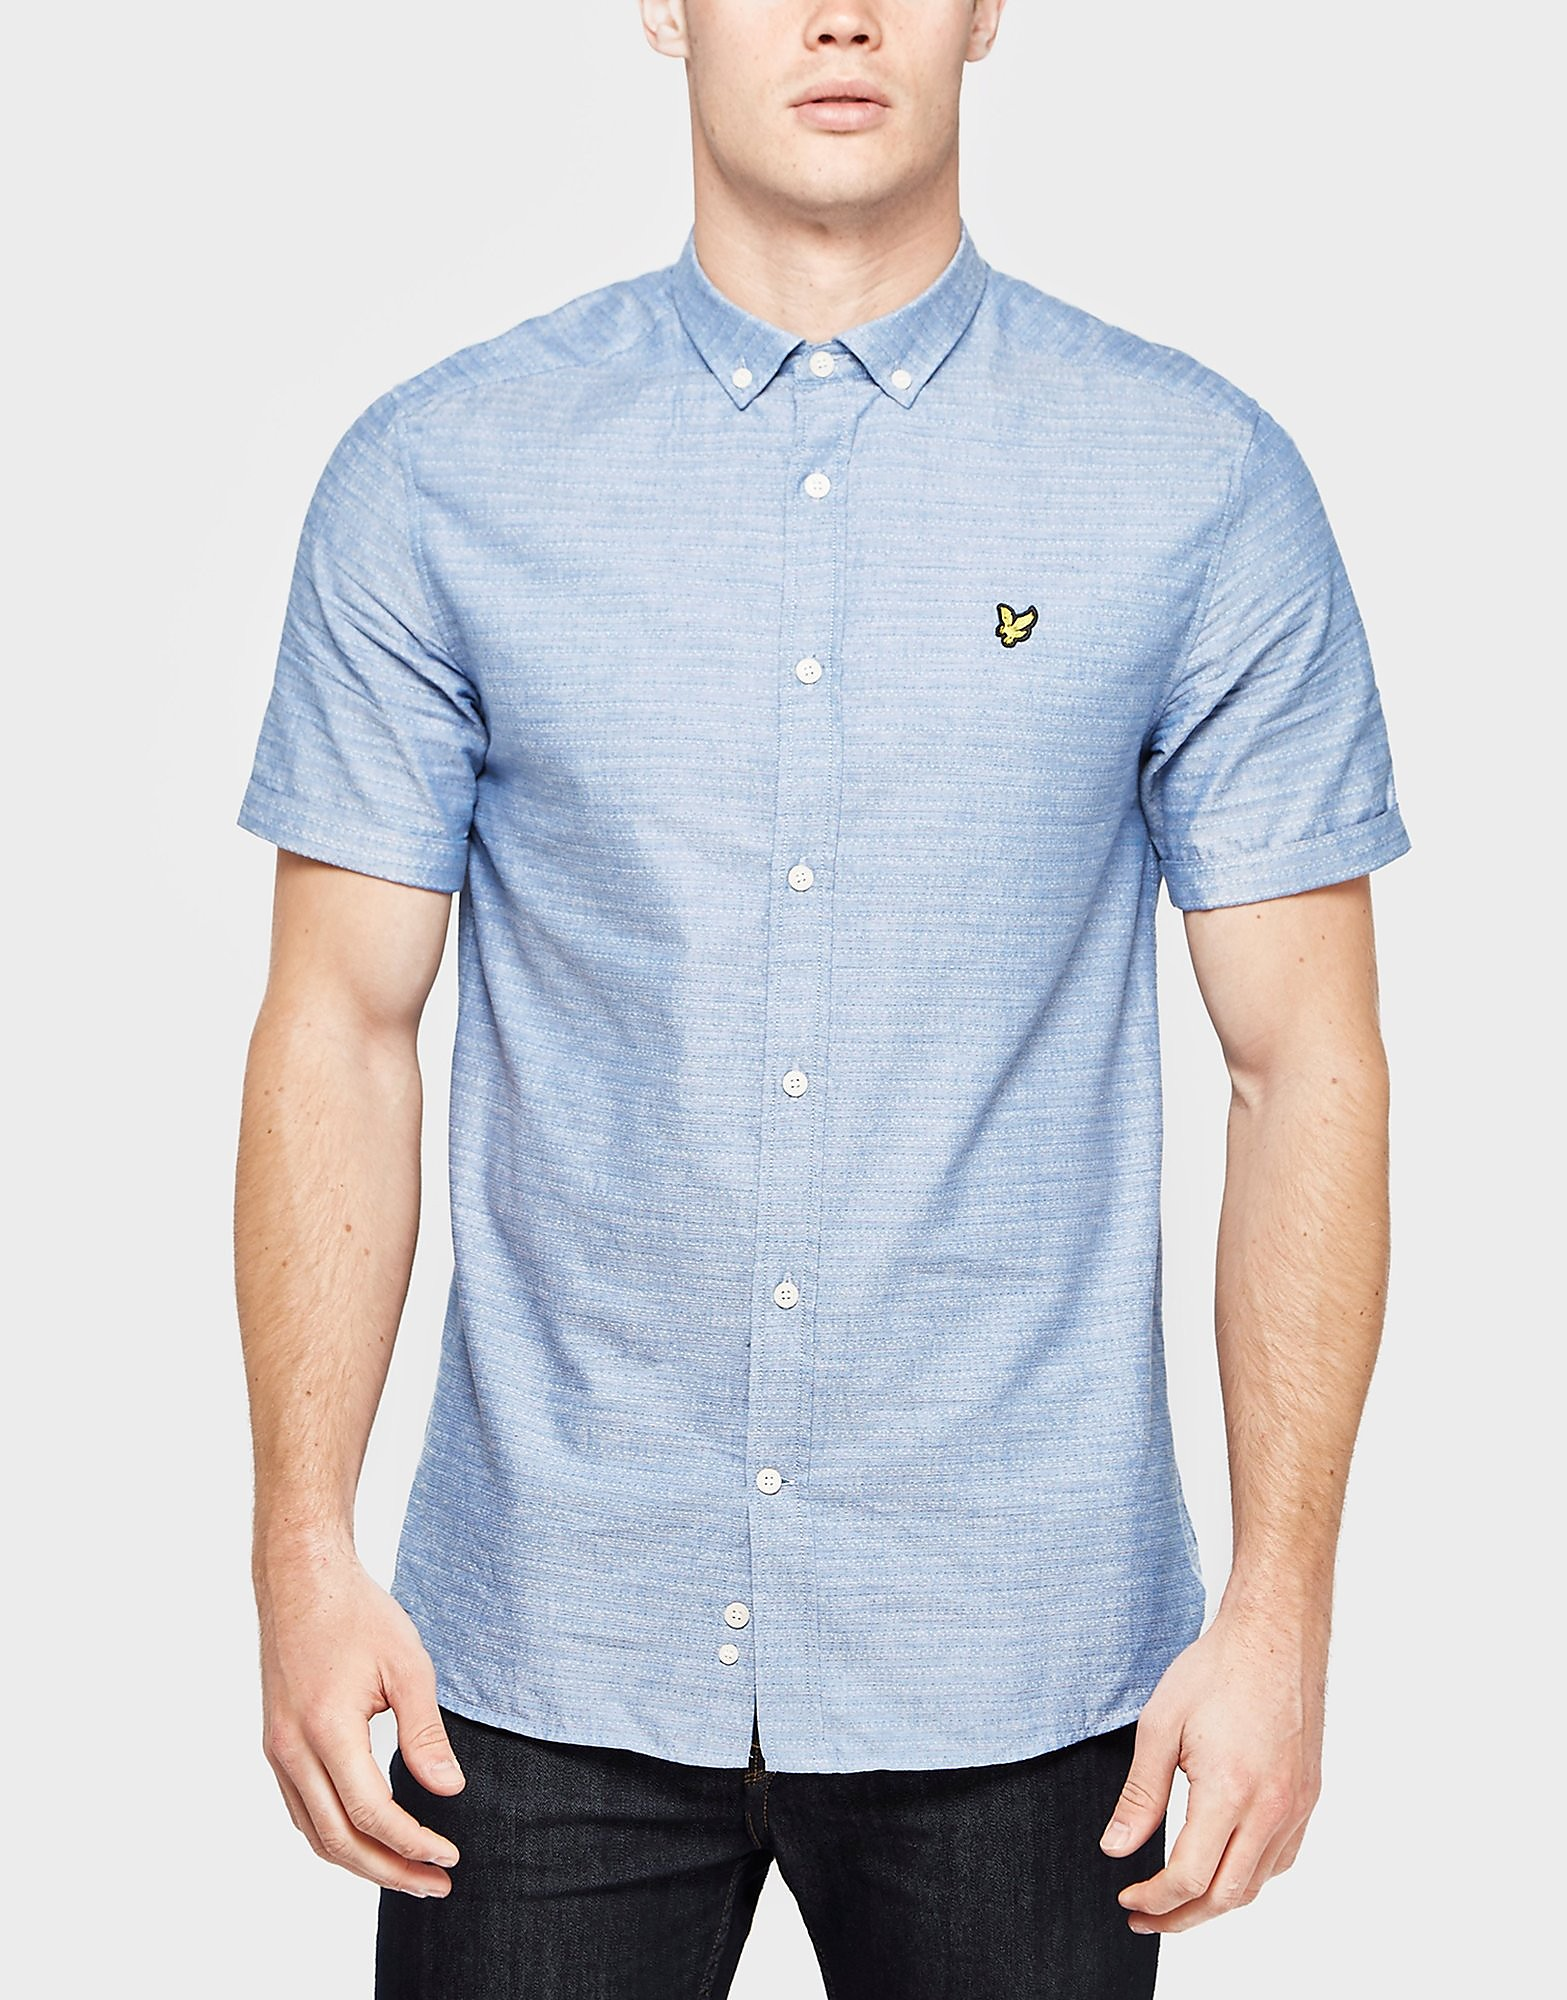 Lyle & Scott Running Stitch Short Sleeve Shirt